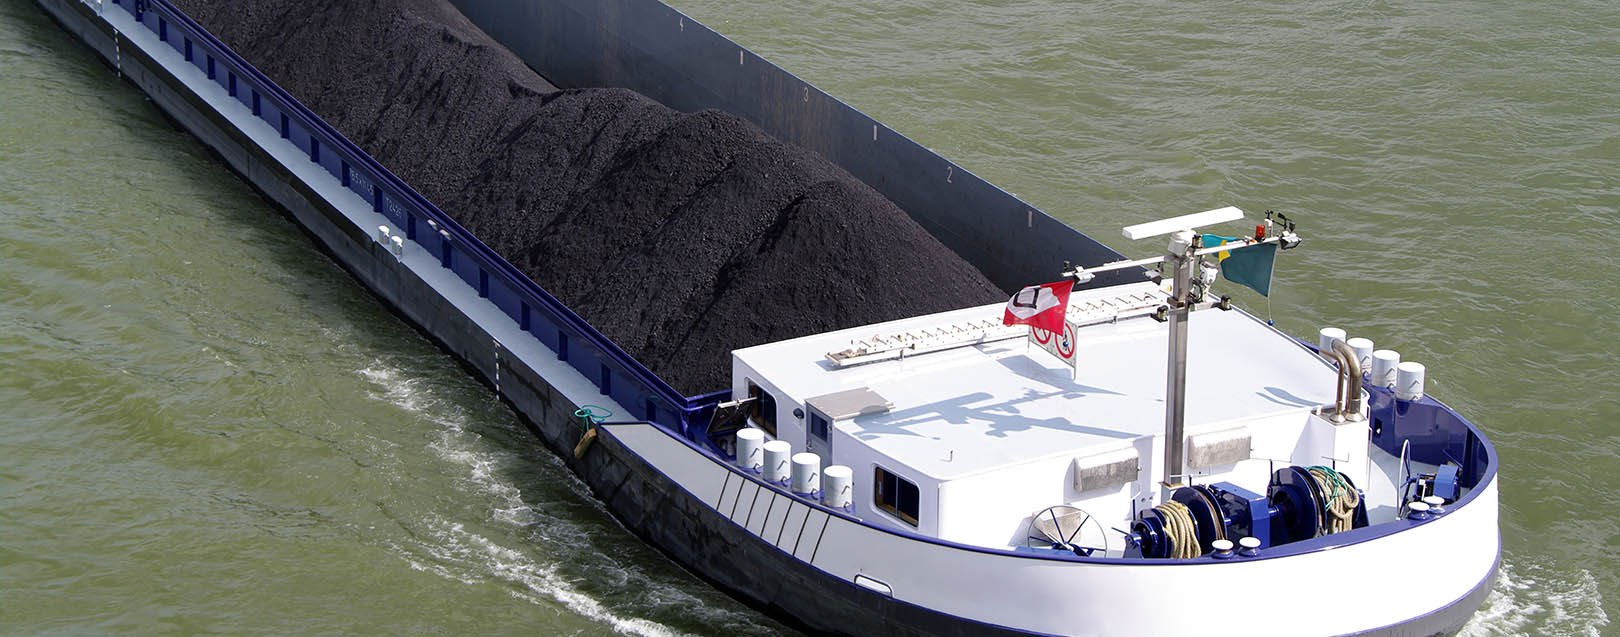 India's thermal coal imports up 1.3% in April-May